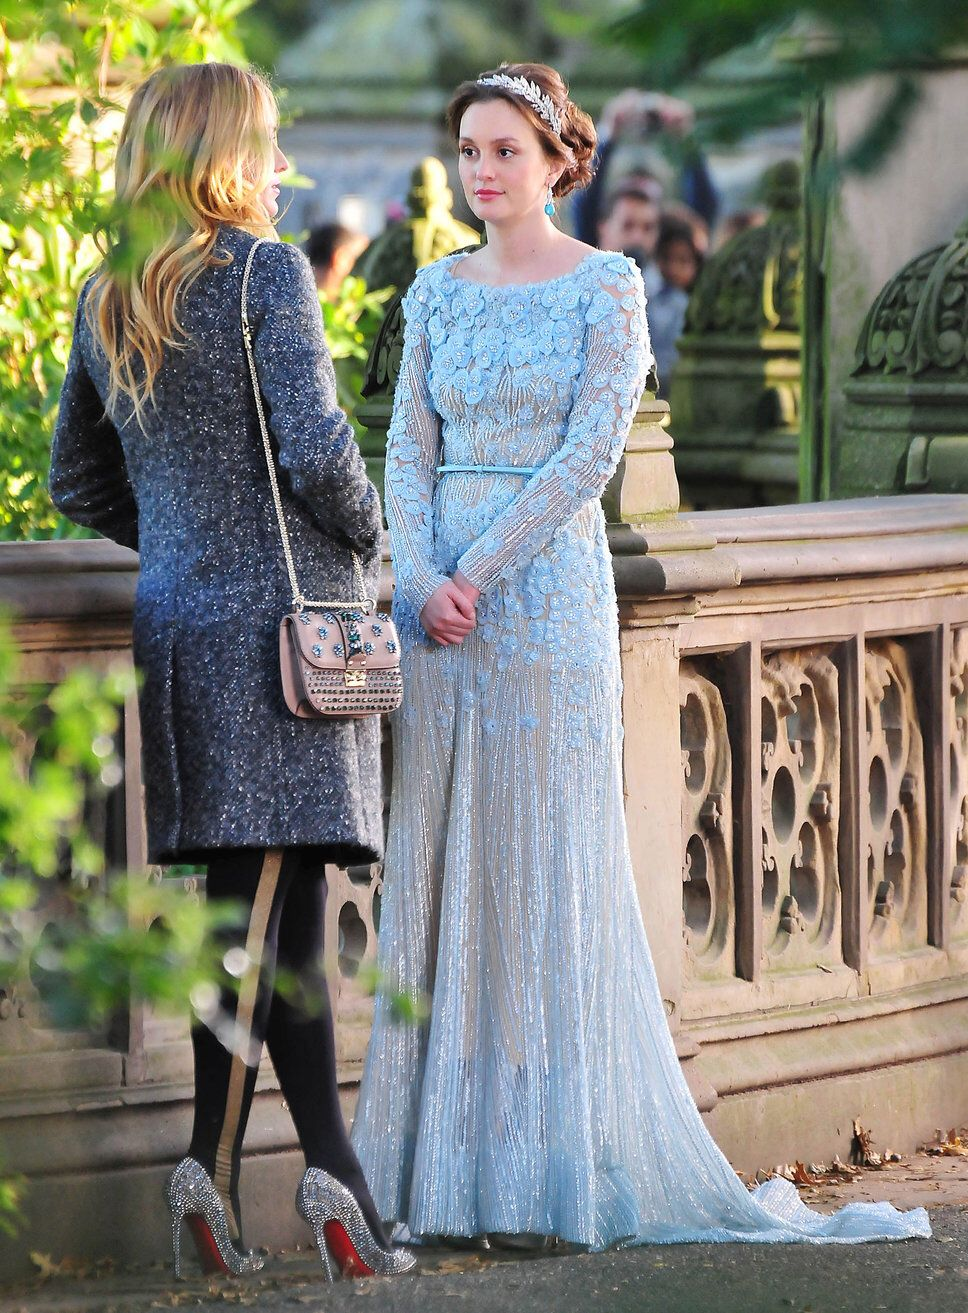 Blair Waldorf in a Gorgeous Pale Blue Elie Saab Gown talking 2 ...